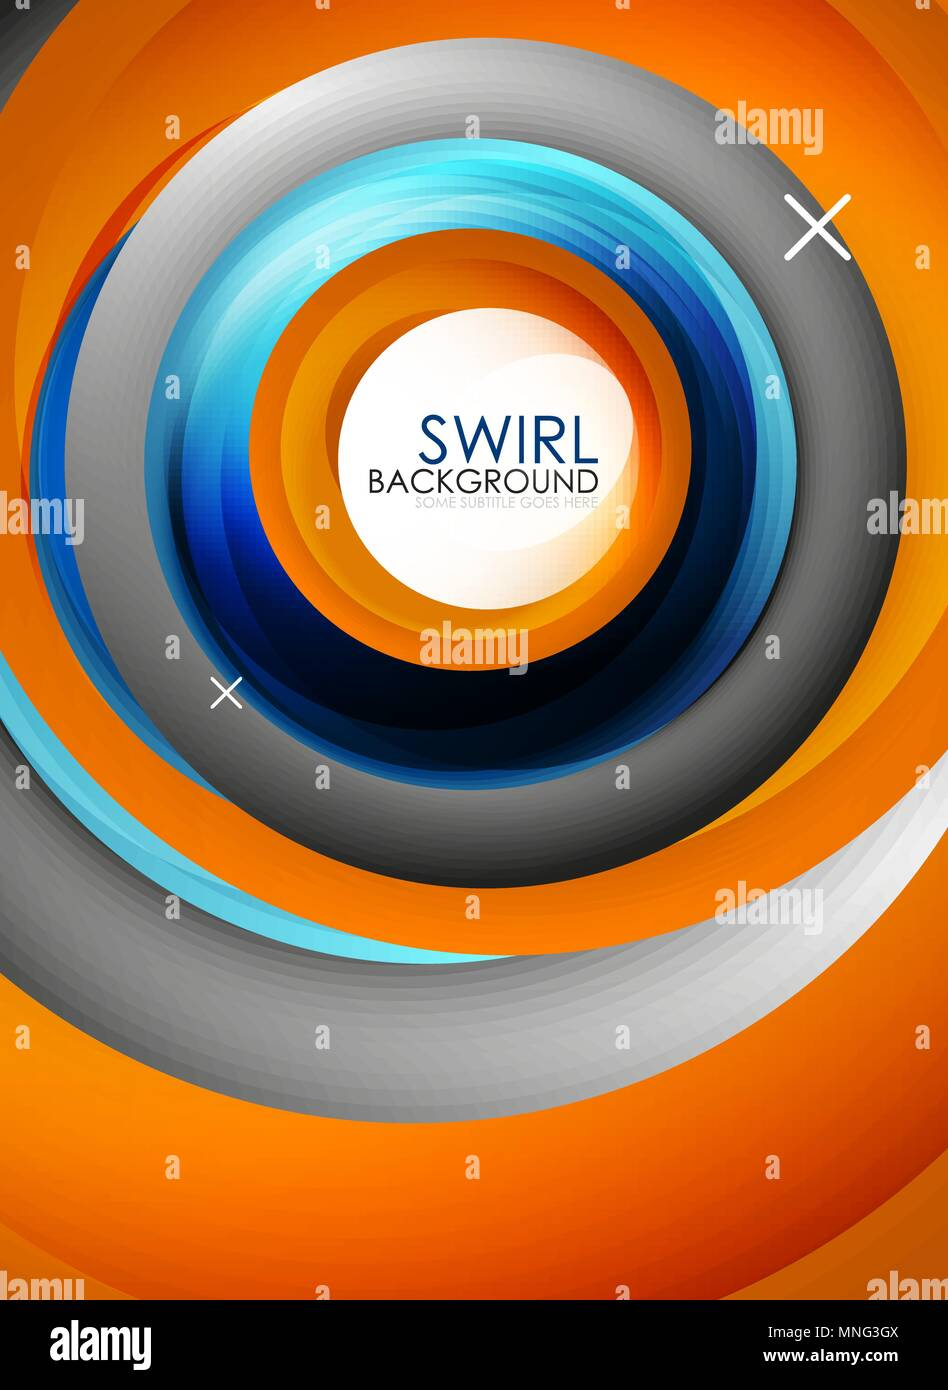 Spiral swirl flowing lines 3d vector abstract background. Spiral swirl flowing lines 3d vector abstract background. Vector illustration - Stock Image